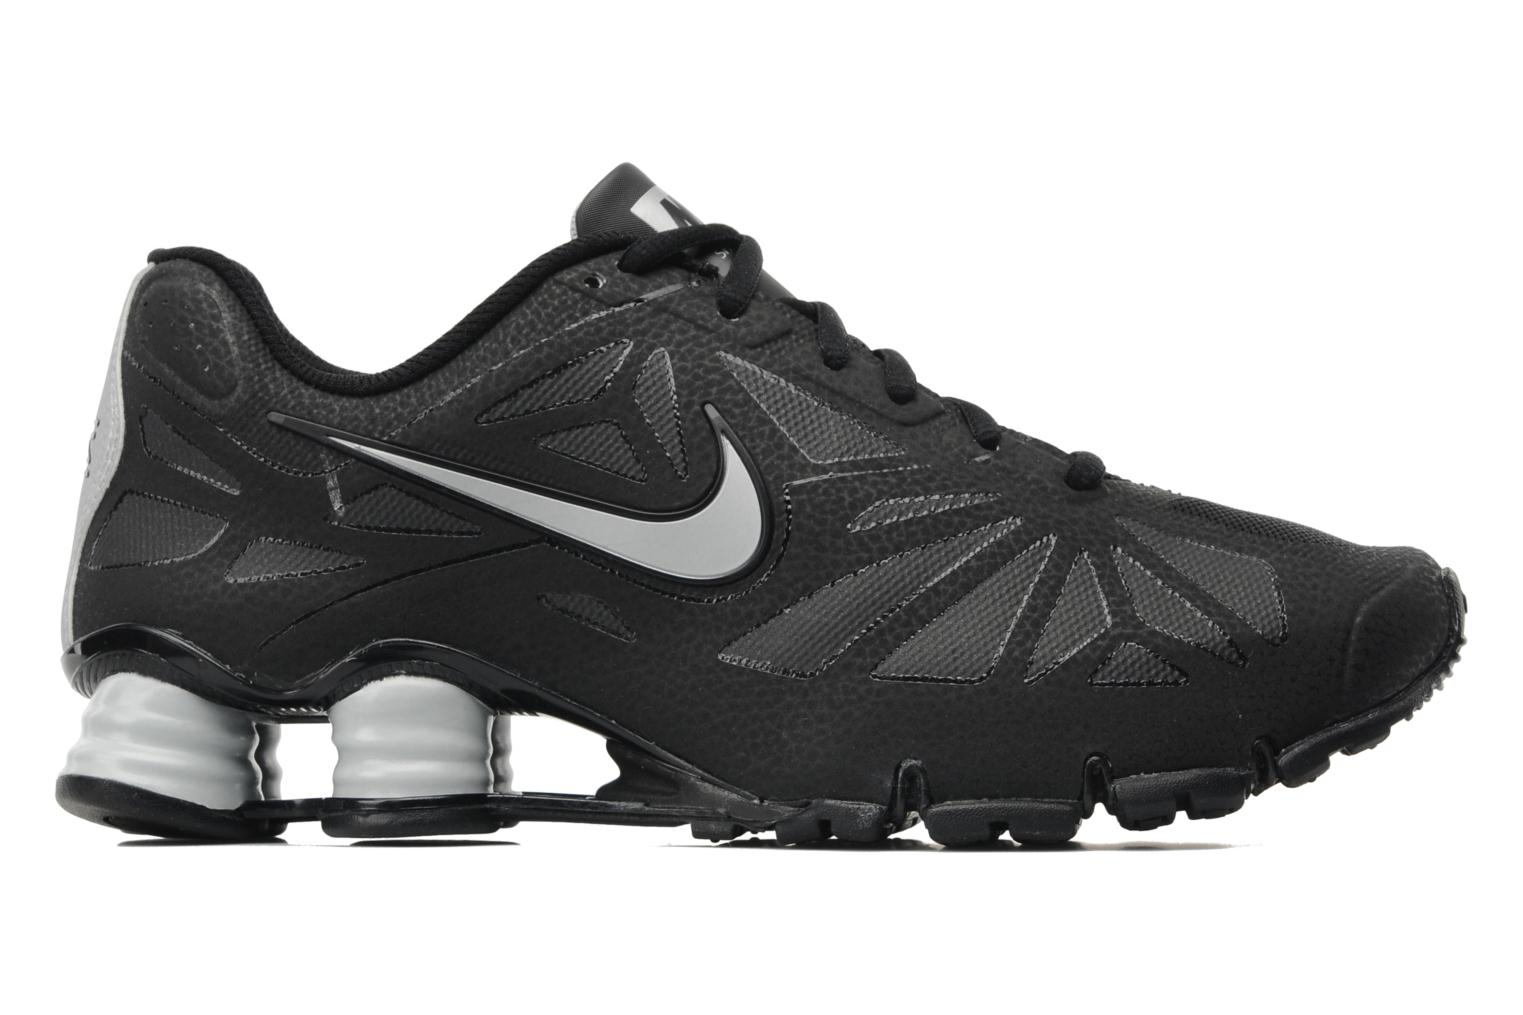 7124fd3cb14 Learn more about sevilla.org prime. nike shox clearance Unfollow mens  product shox size 14 to stop getting updates on your sevilla.org feed.